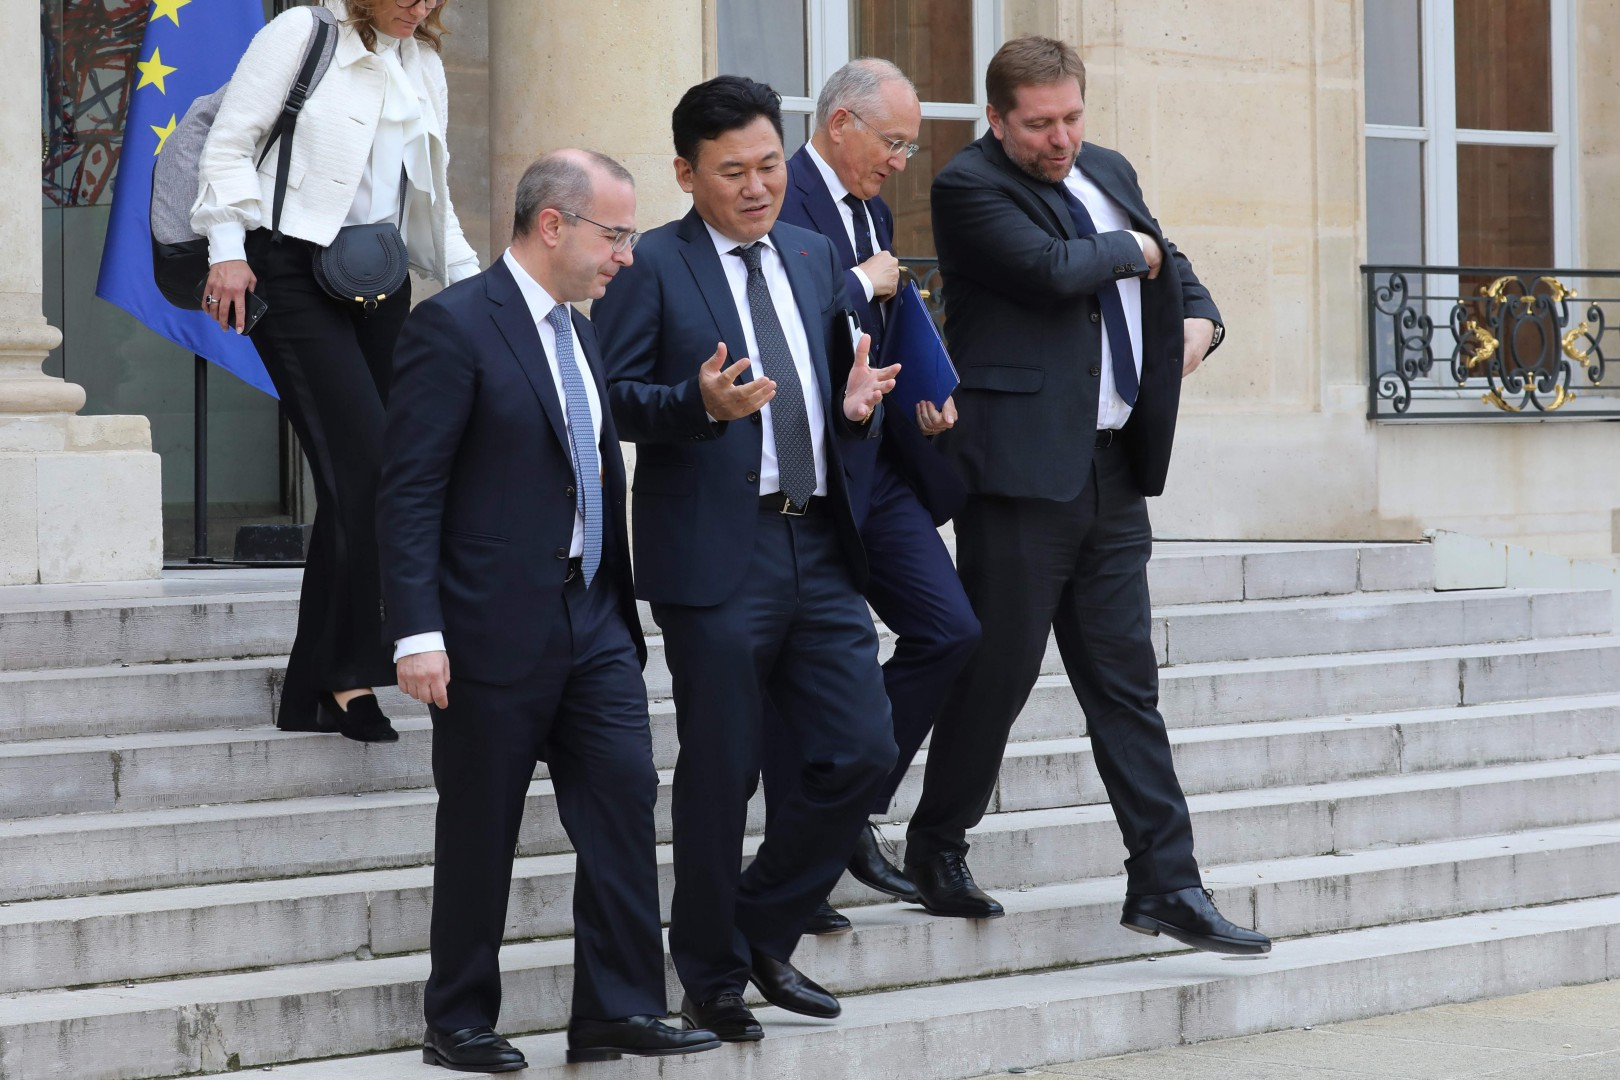 """Rakuten CEO Hiroshi Mikitani (C), Groupe La Poste COE Philippe Wahl (2ndR) and CEO of Qwant Eric Leandri (R) they leave after the """"Tech for Good"""" Summit at the Elysee Palace in Paris, on May 23, 2018. / AFP PHOTO / ludovic MARIN"""